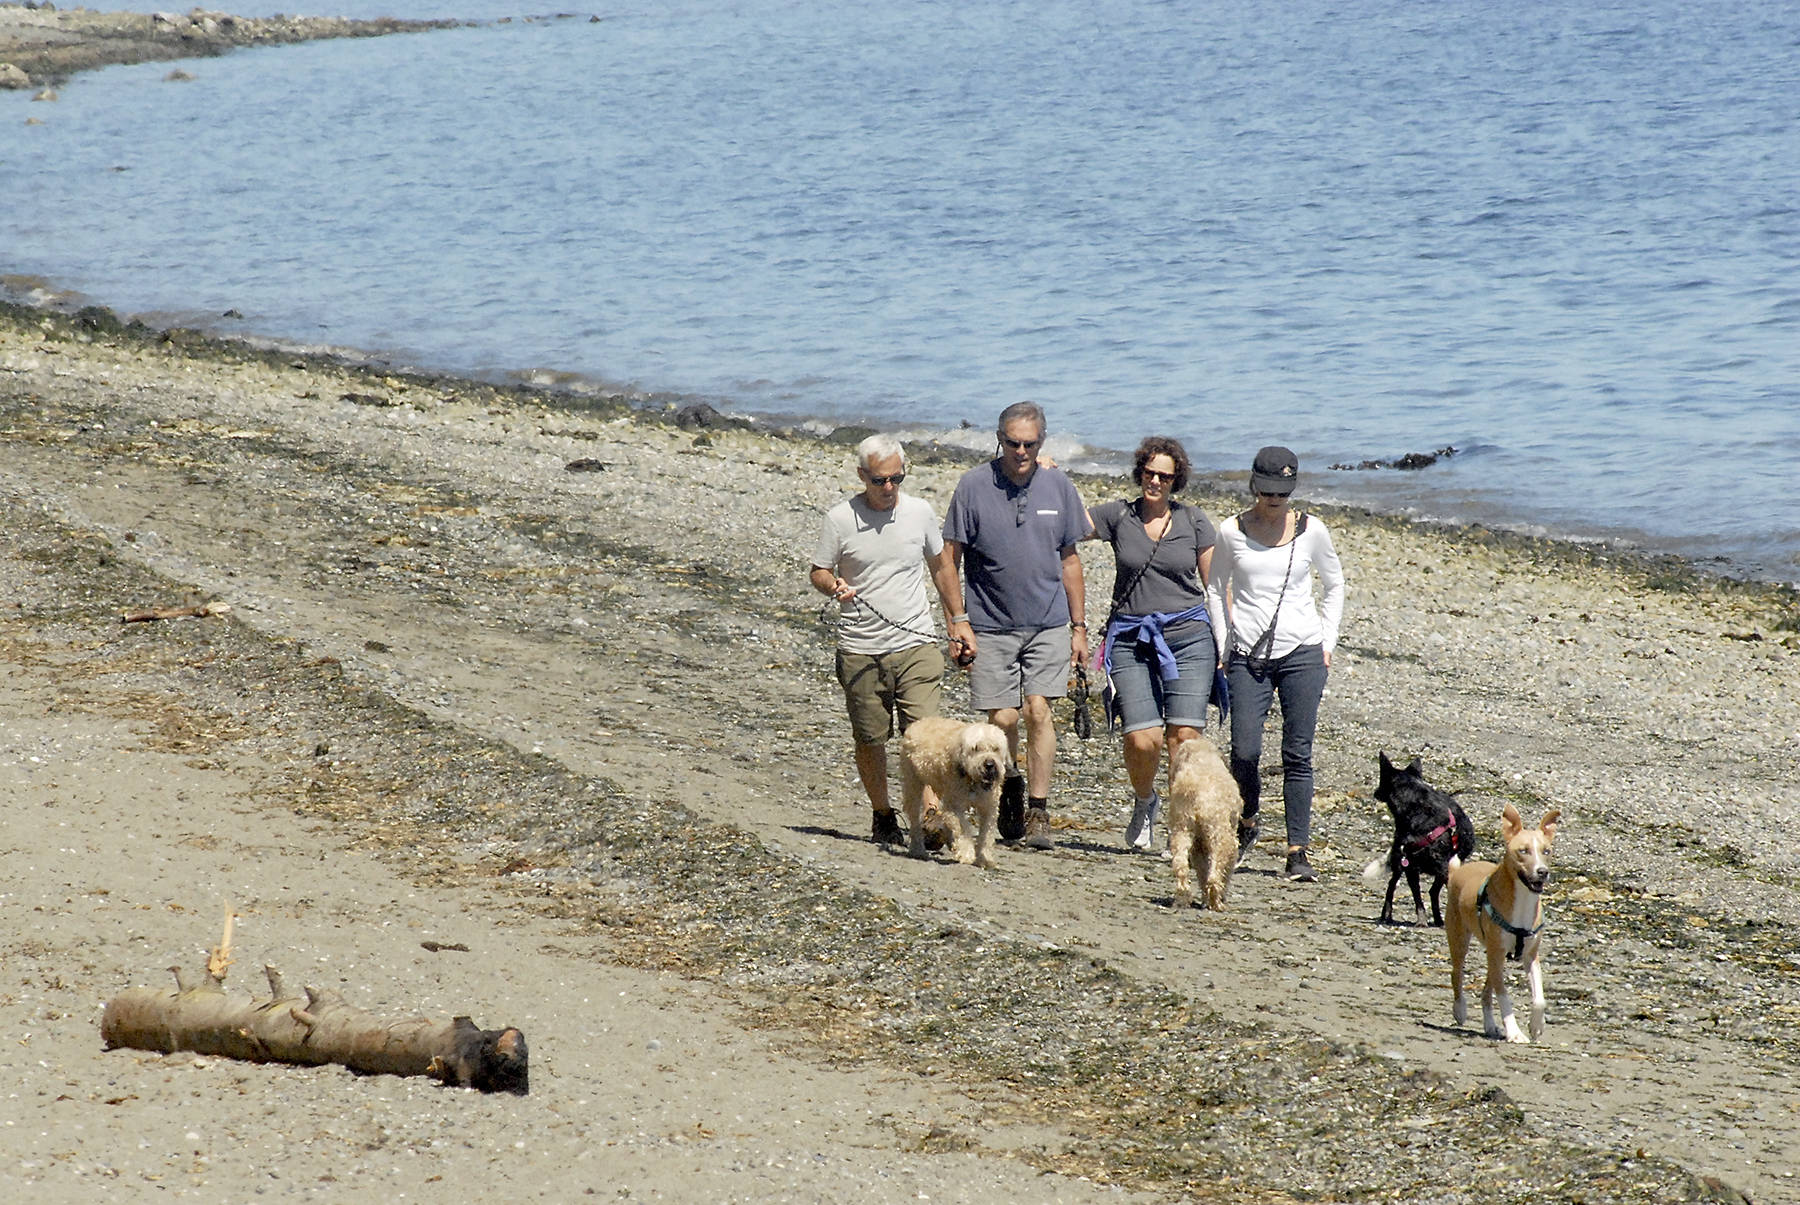 Beach walkers on Sequim Bay on the North Olympic Peninsula in Washington state. (Keith Thorpe/Peninsula Daily News)